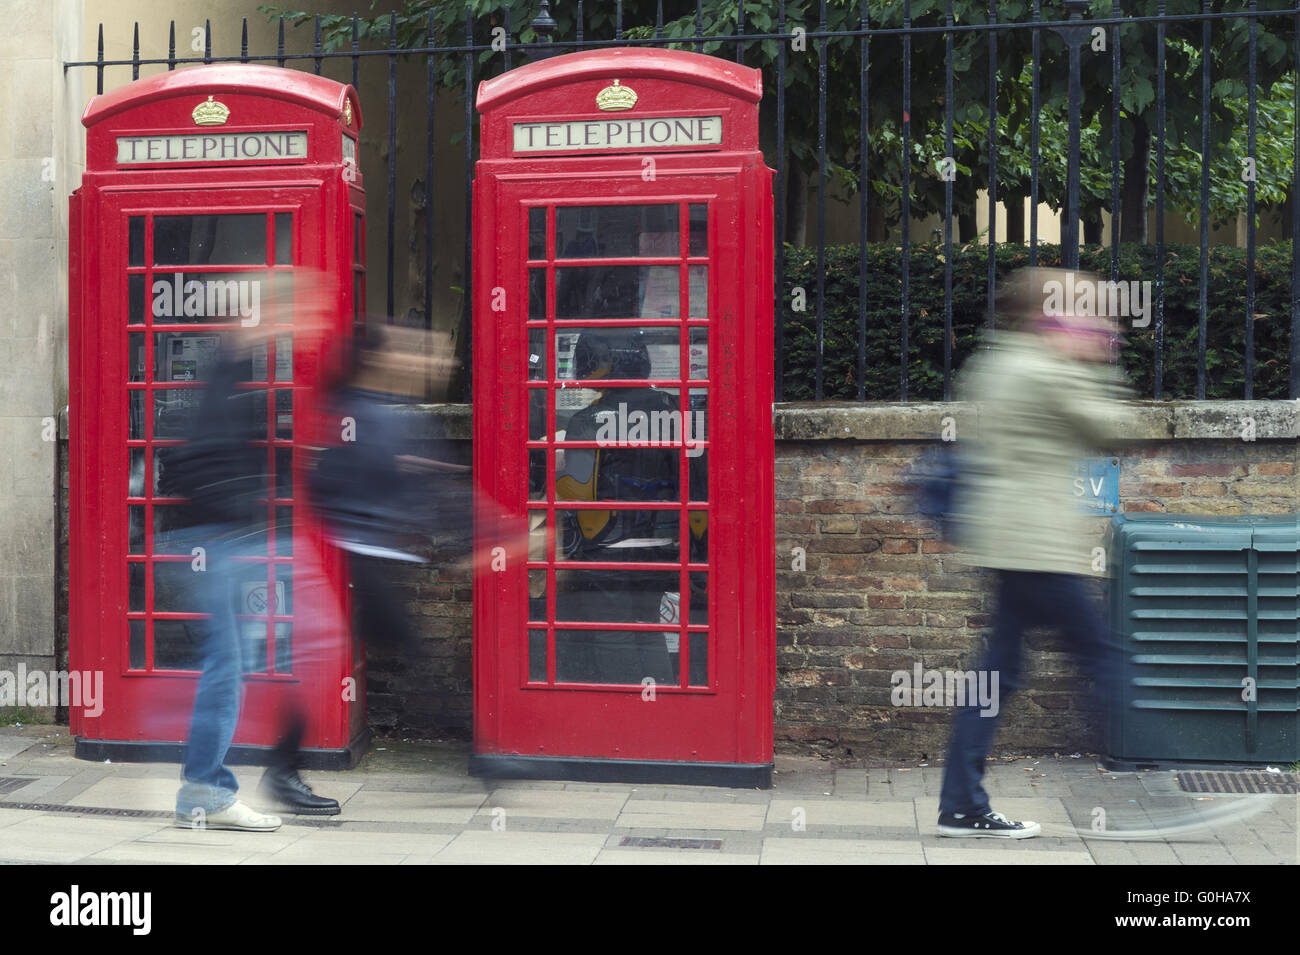 Schemes of passers 2 red phone booths. Stock Photo